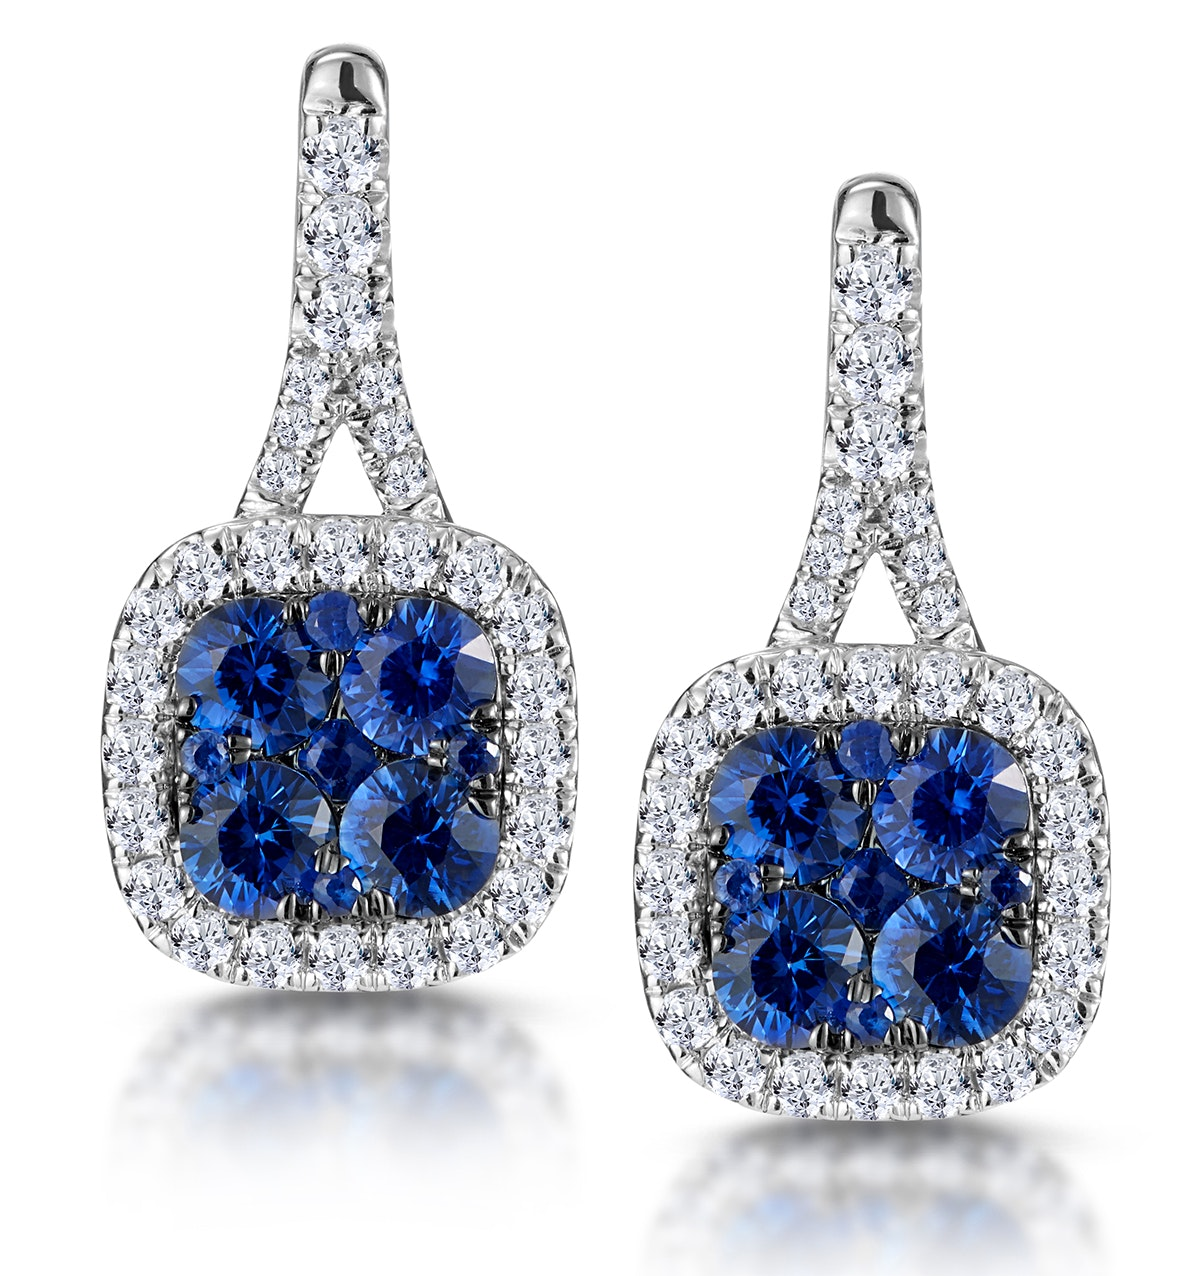 1ct Sapphire and Diamond Halo Earrings 18KW Gold - Asteria Collection